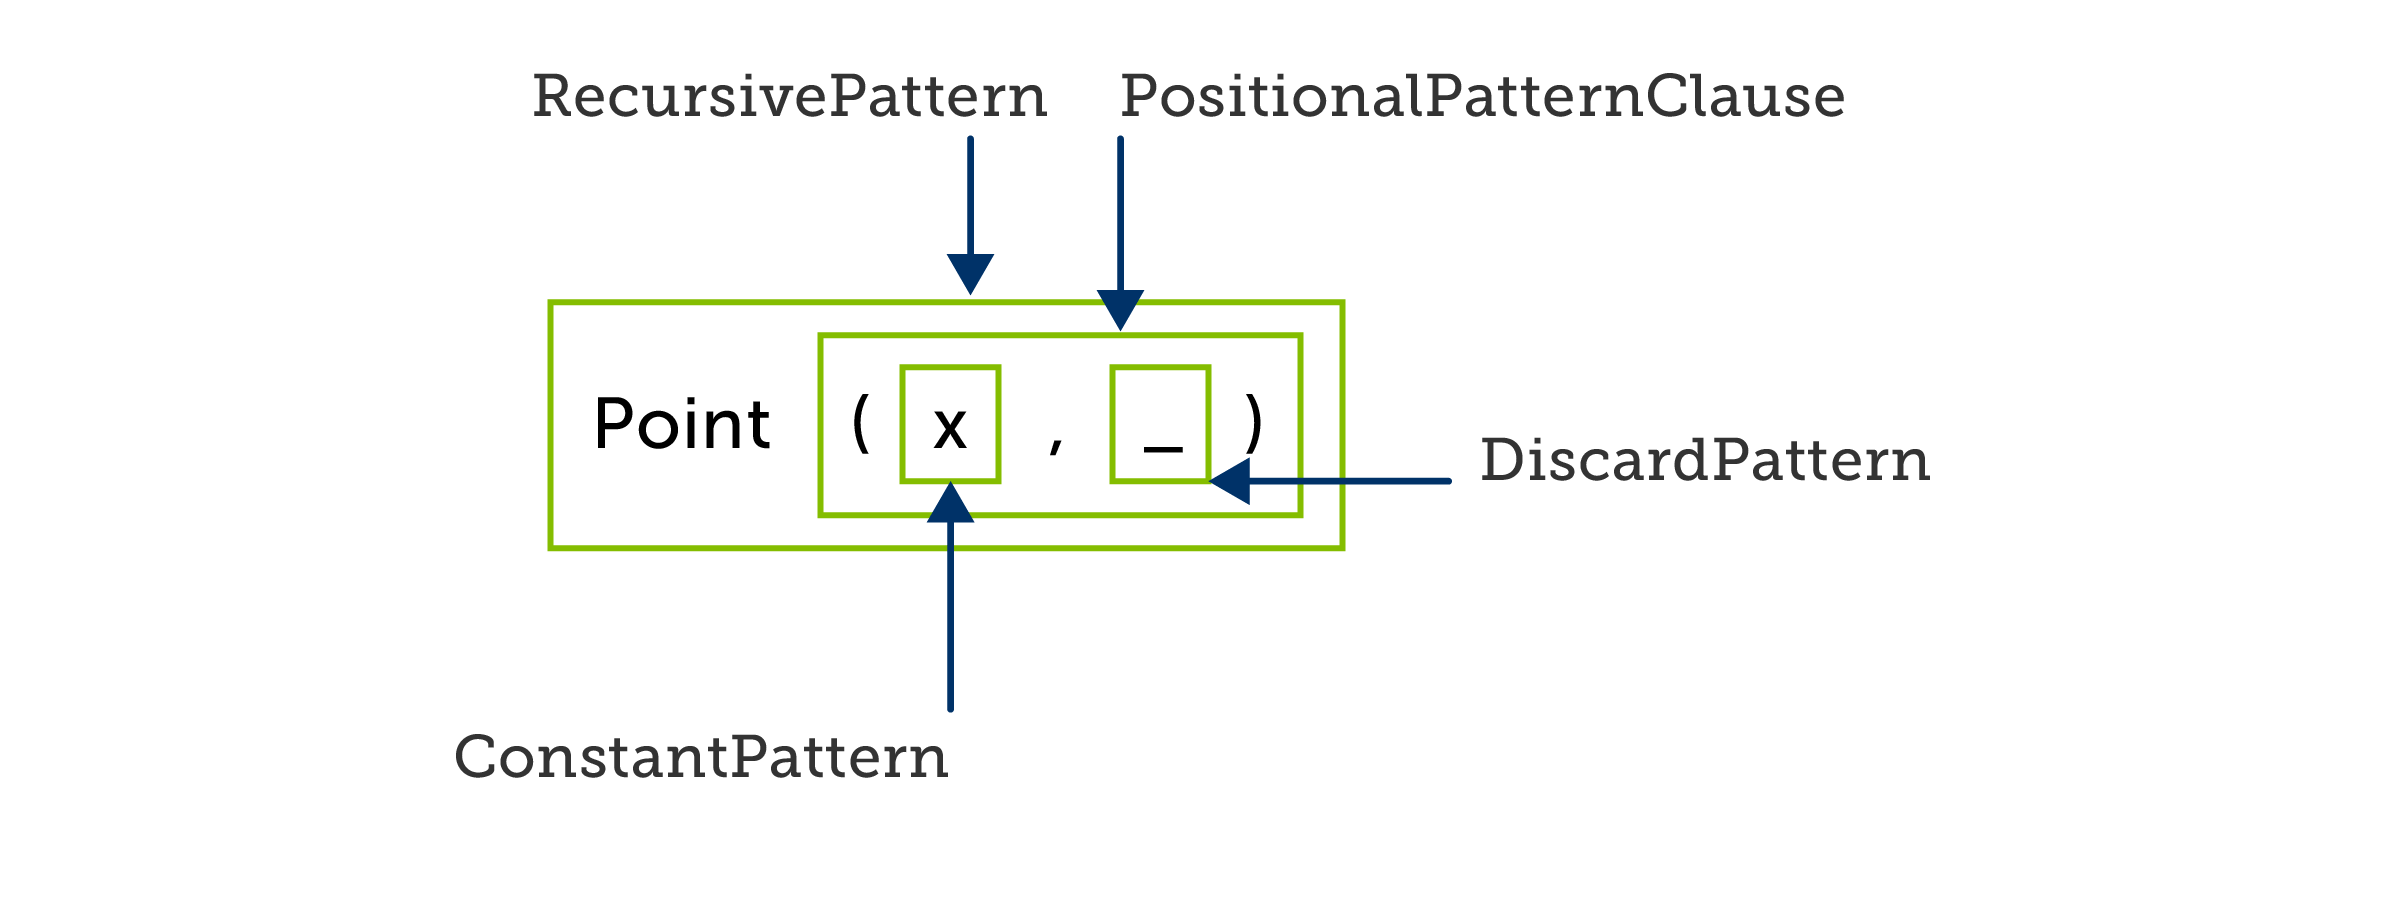 C# positional pattern referring to an existing variable